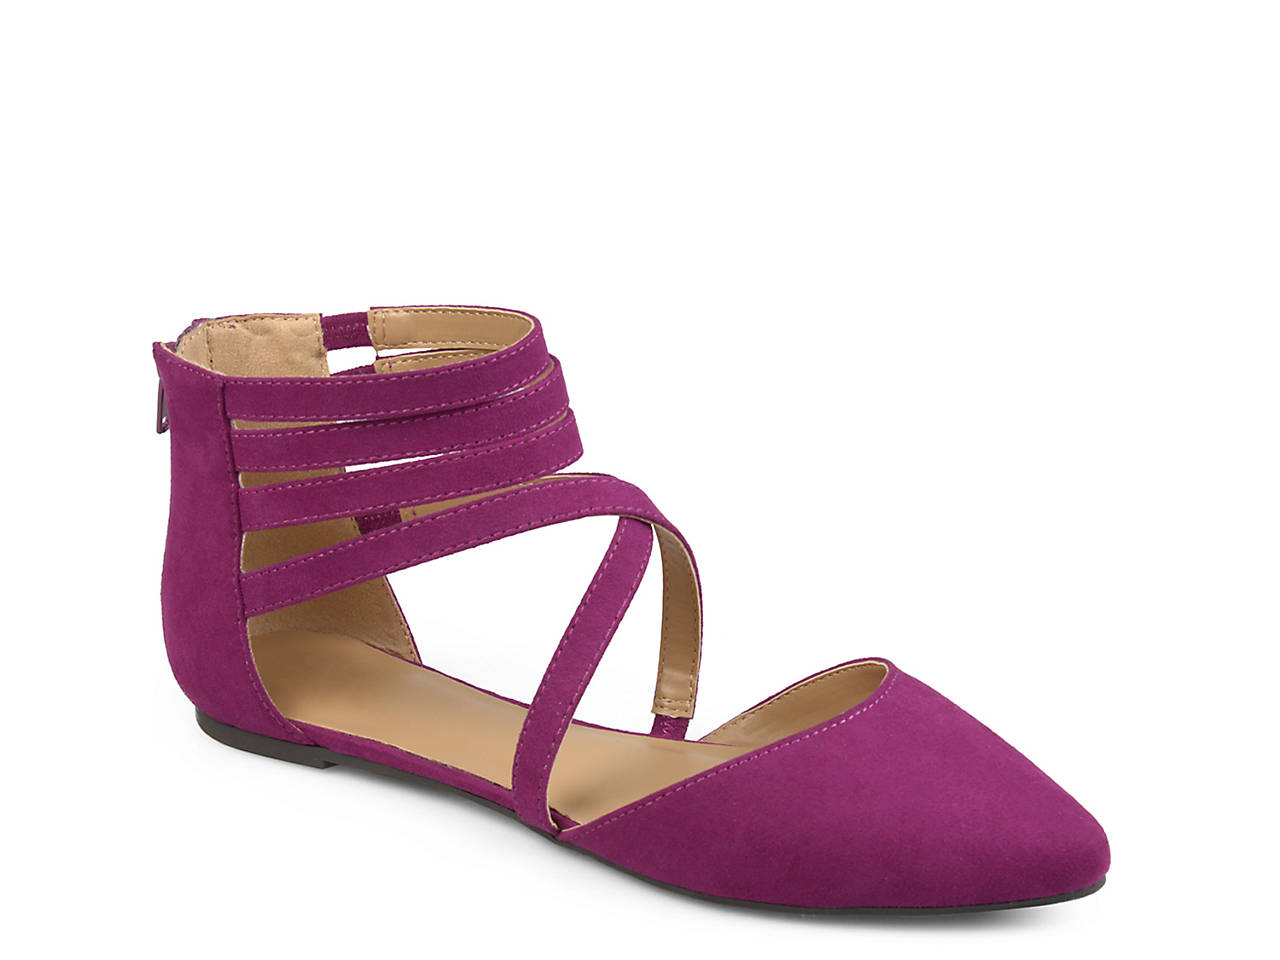 Journee Collection Marlee ... Women's Pointed Flats wu9f4Mqh1